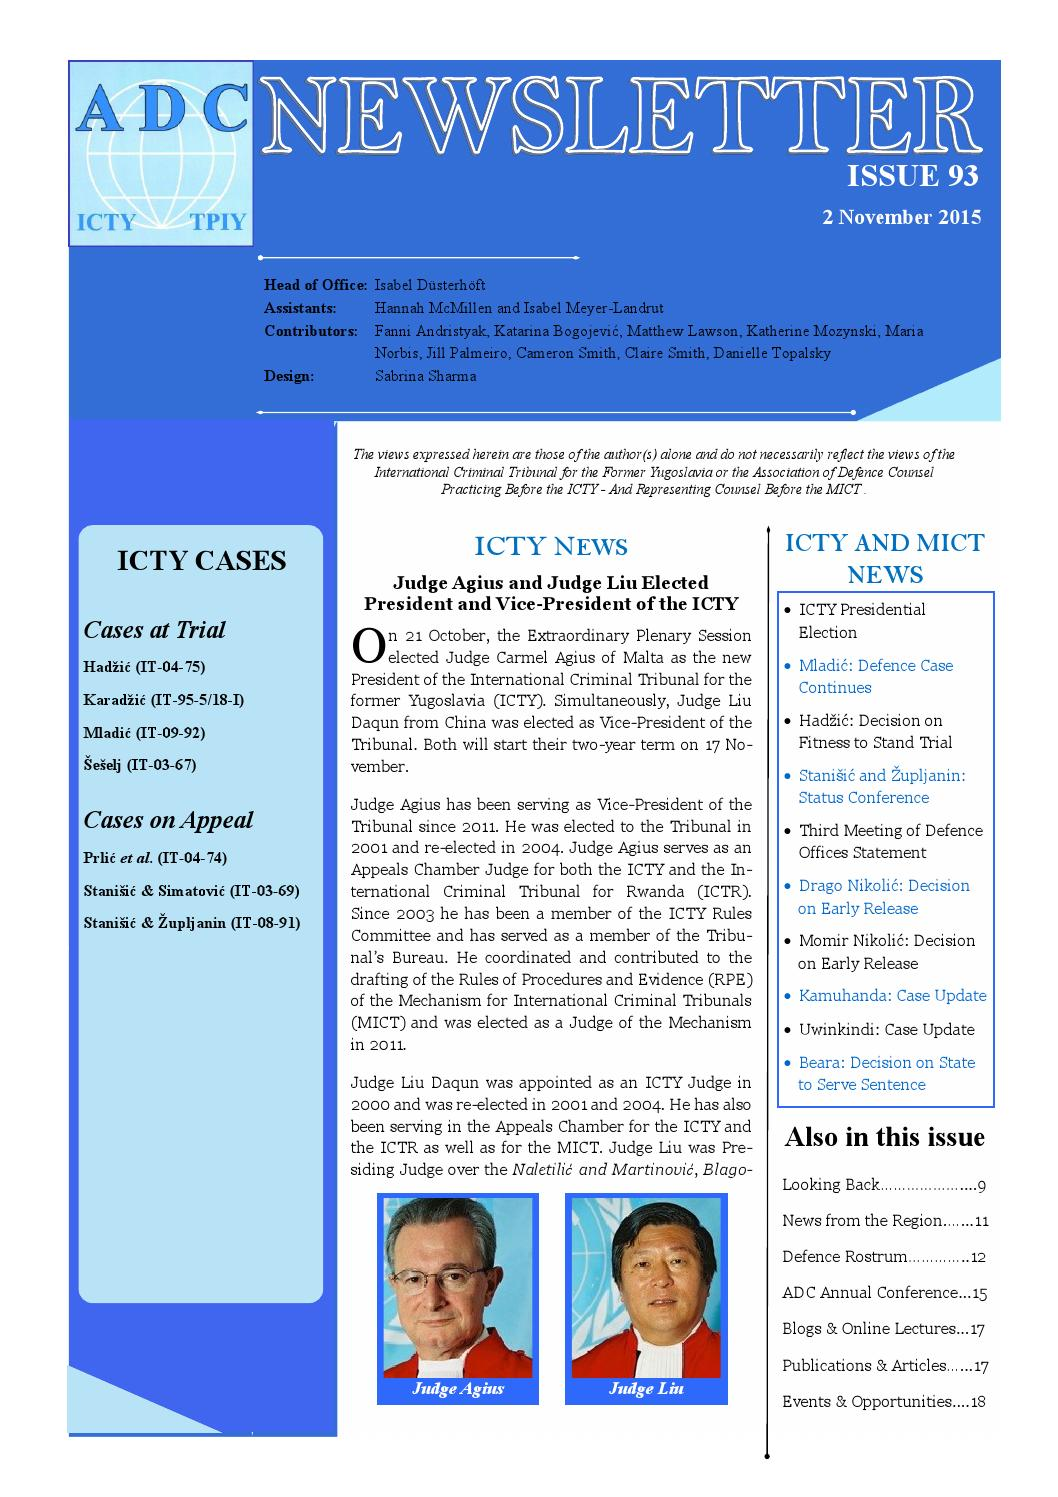 ADC-ICTY Newsletter issue 93